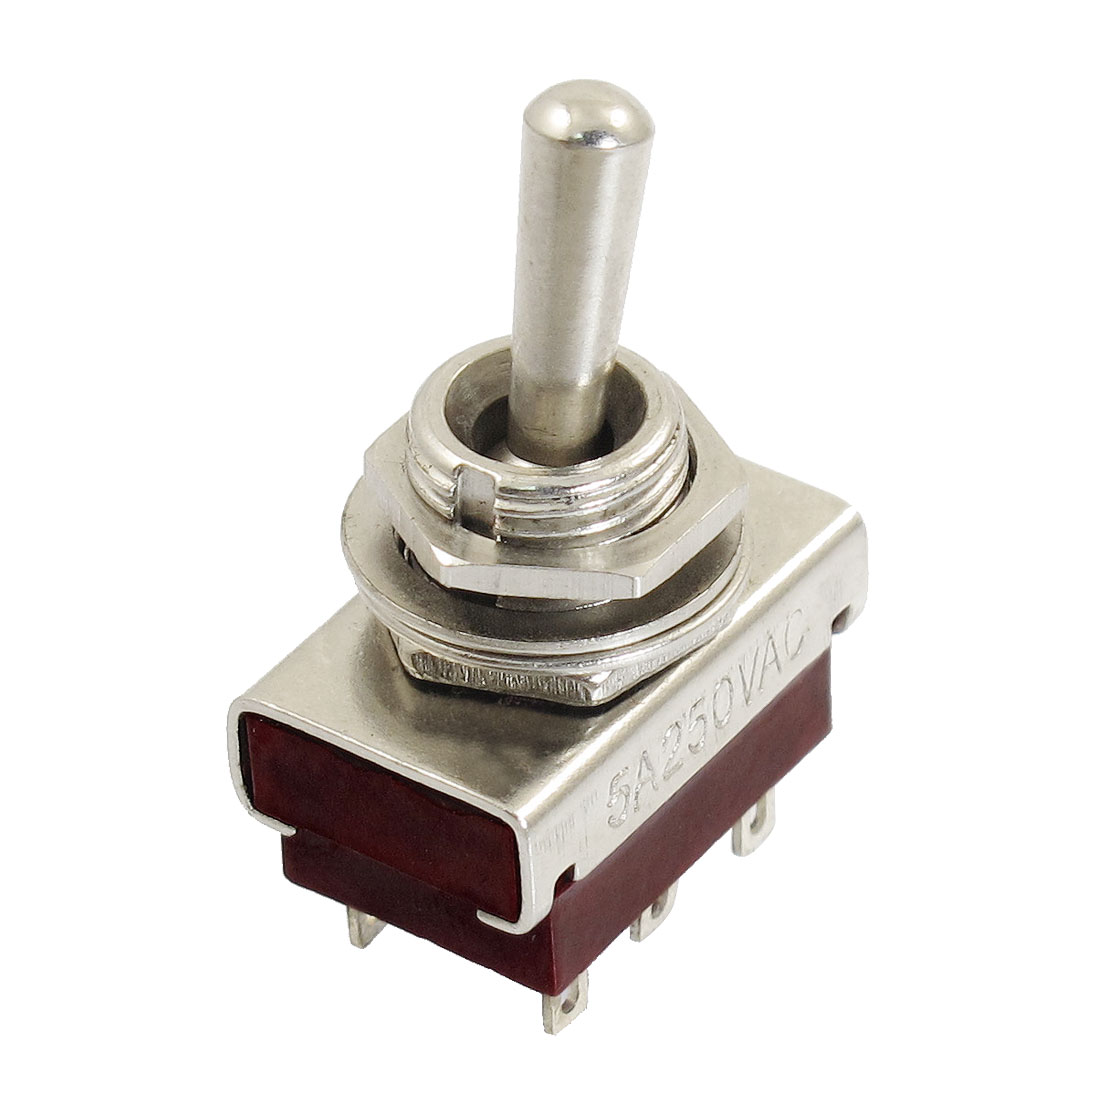 AC 250V 5A 6 Terminals On-On 2 Position DPDT Toggle Switch